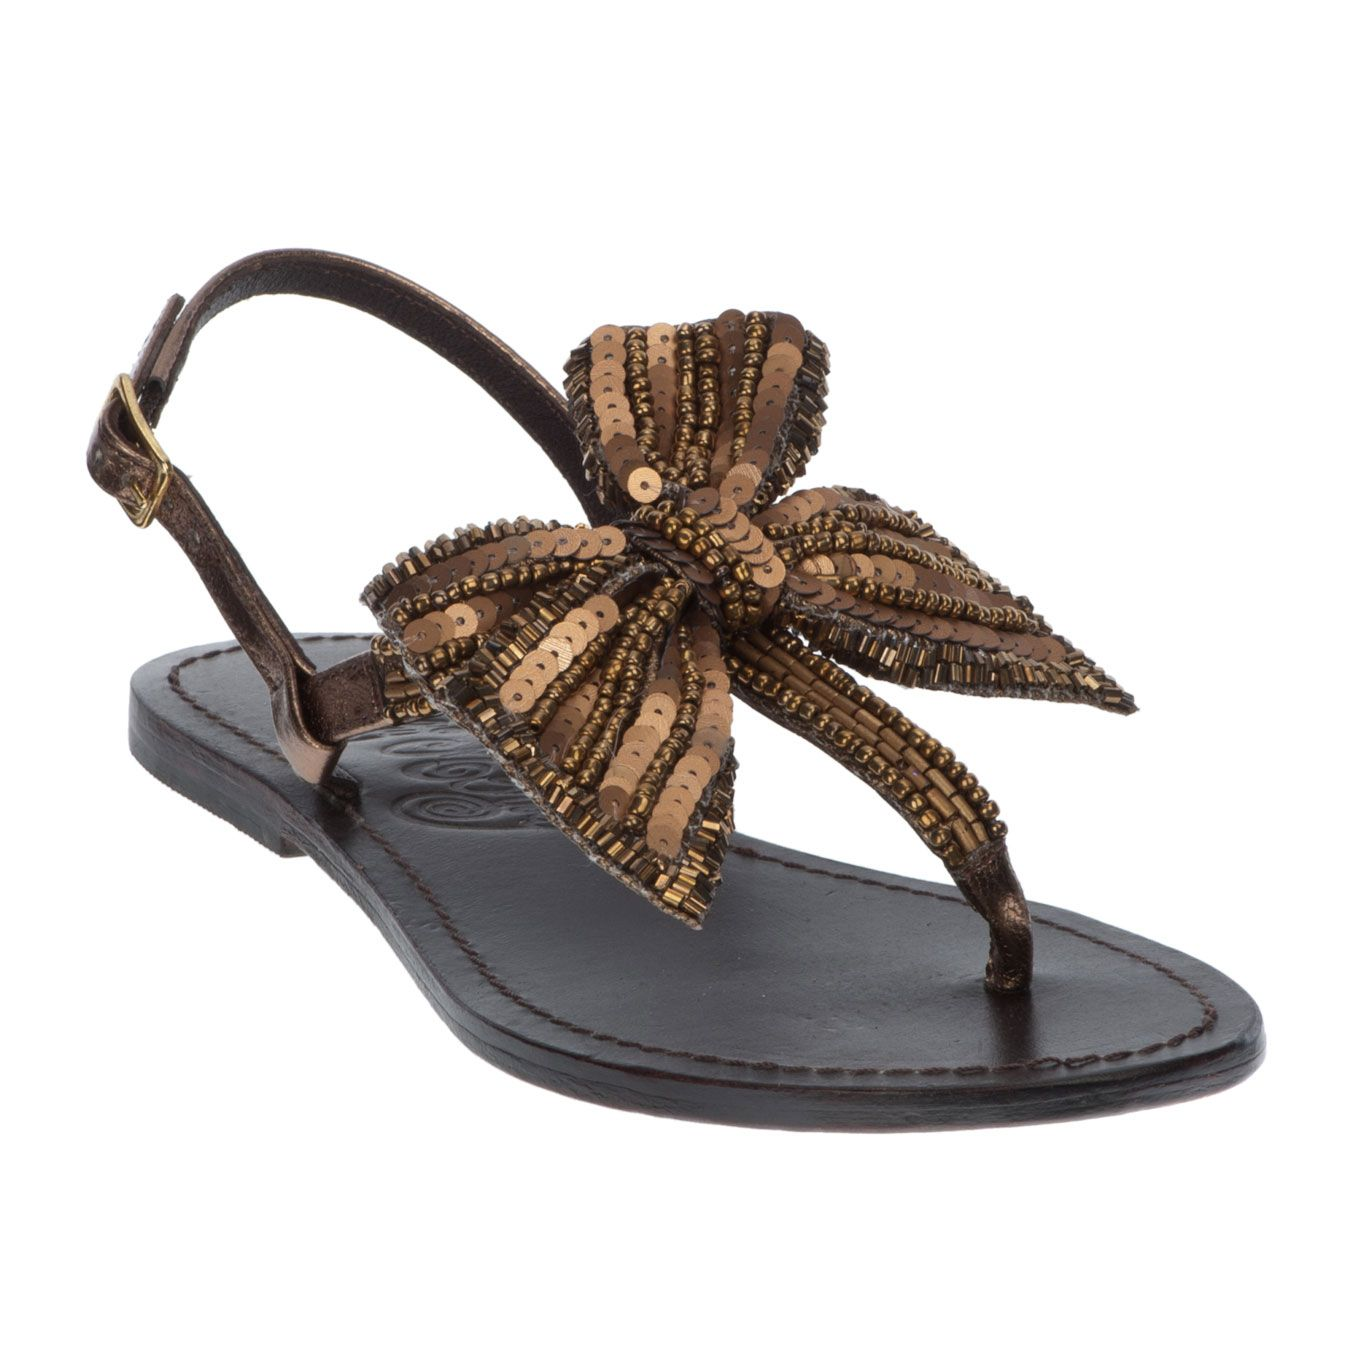 bronze $55 naughty monkey shoes are so cute!